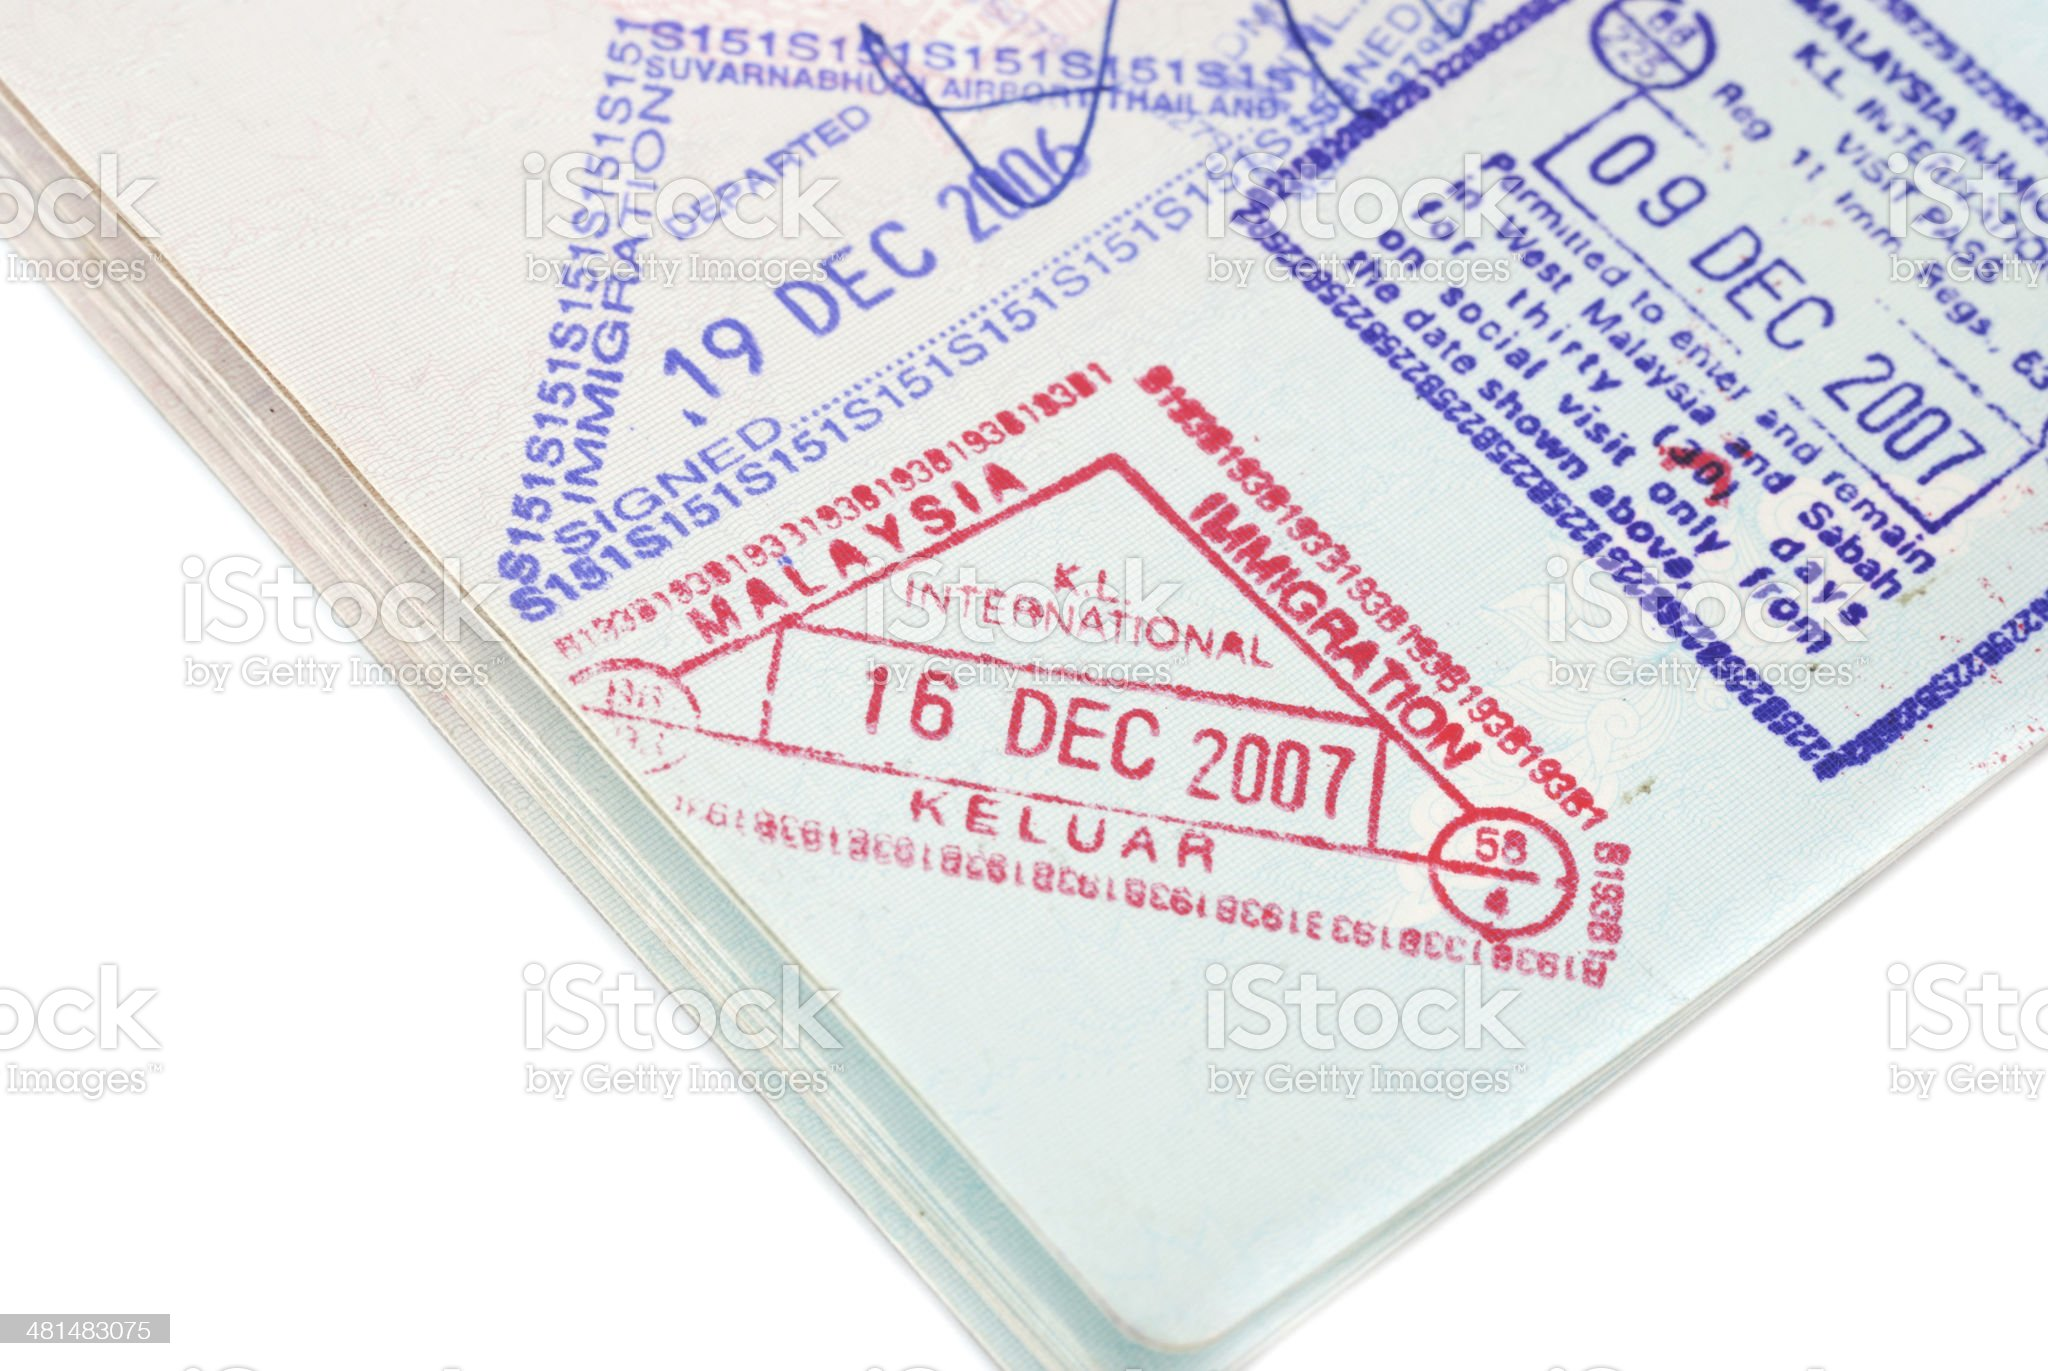 Malaysia passport entry  stamps royalty-free stock photo